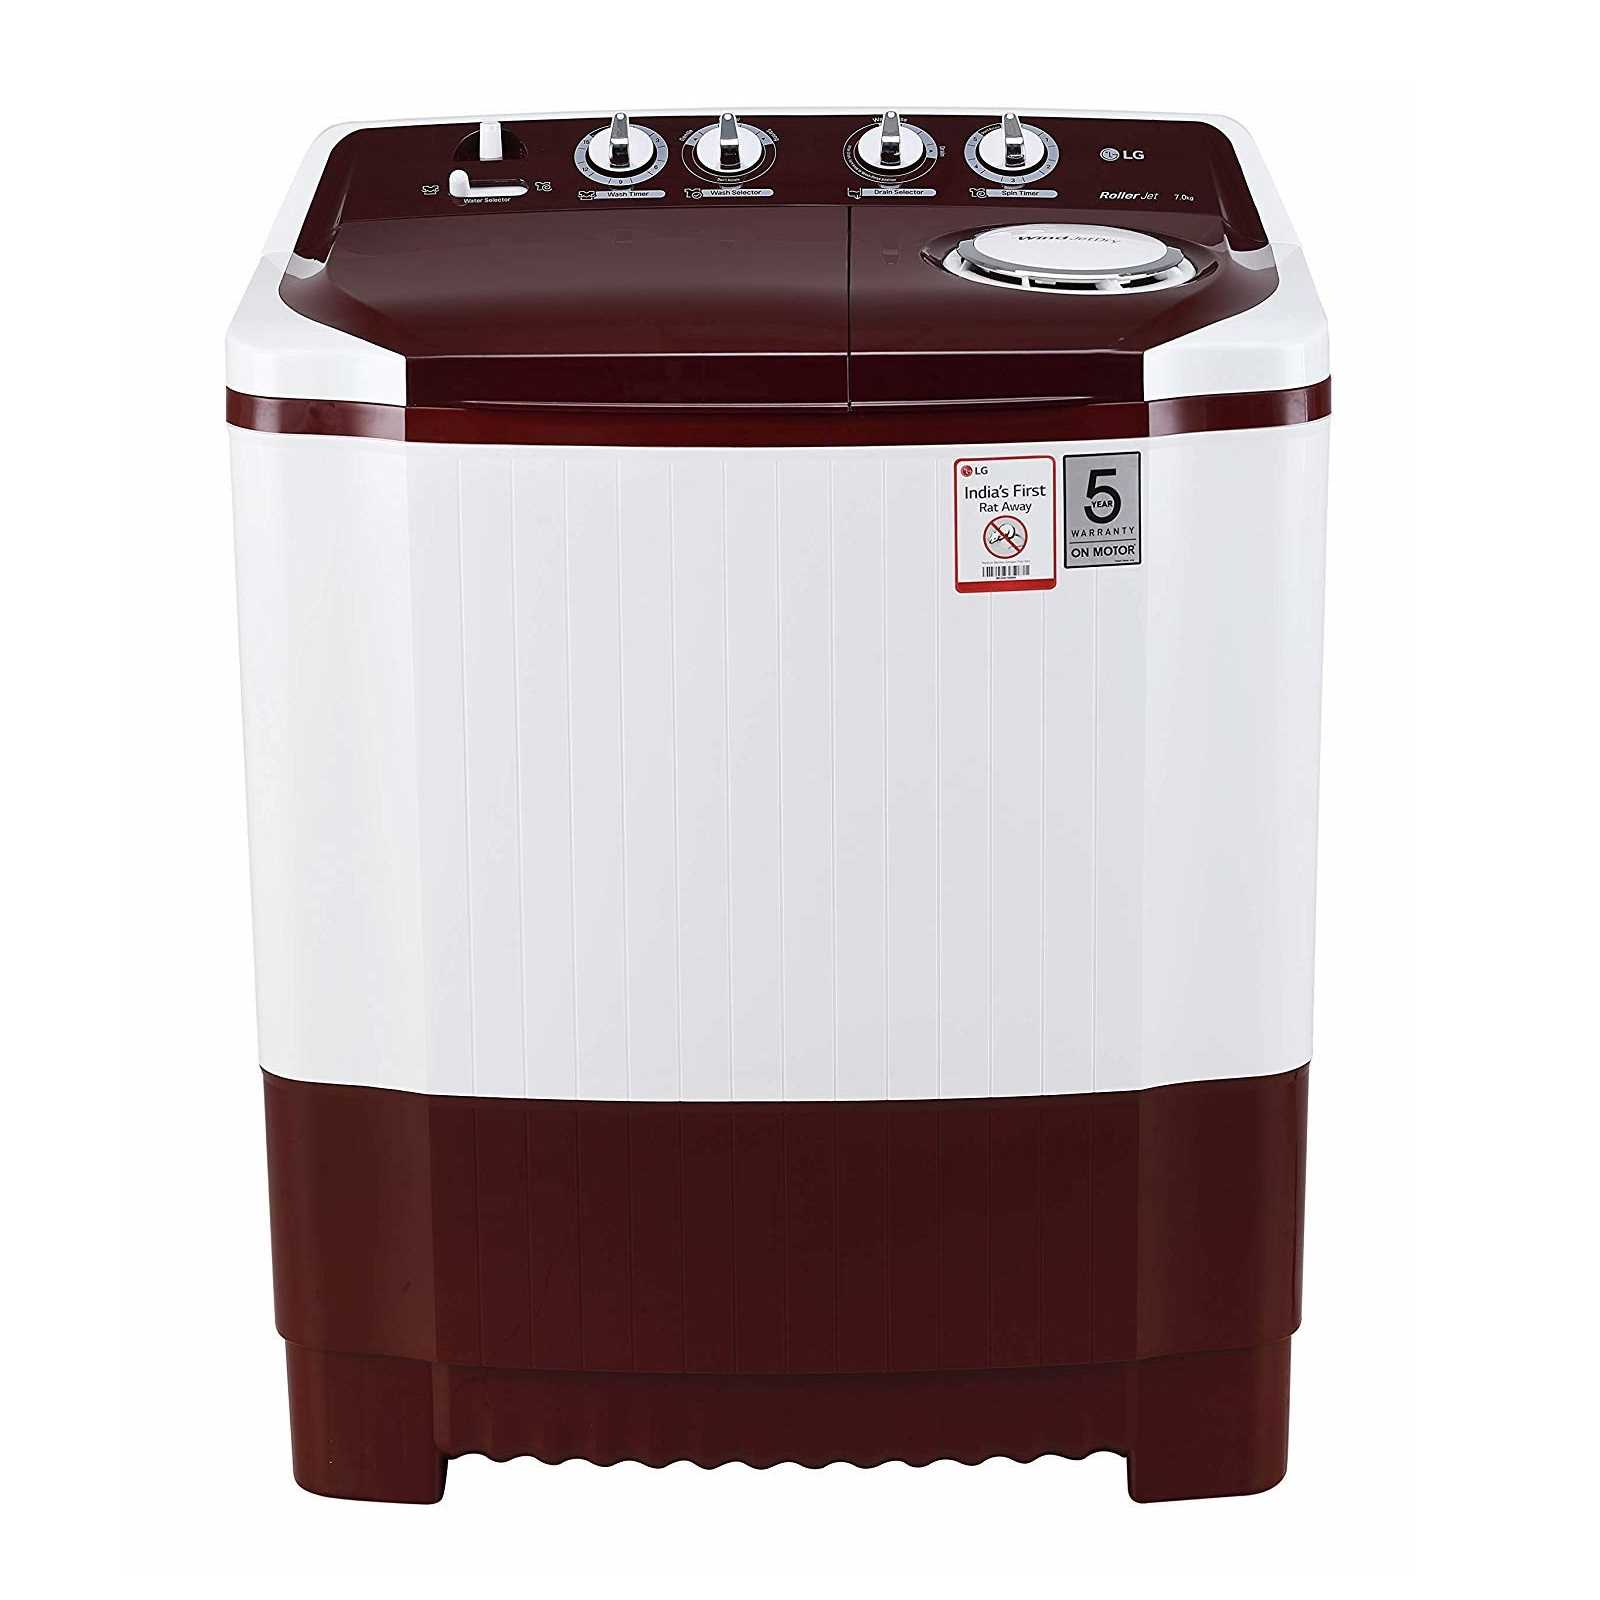 LG P7010RRAA 7 Kg Semi Automatic Top Loading Washing Machine